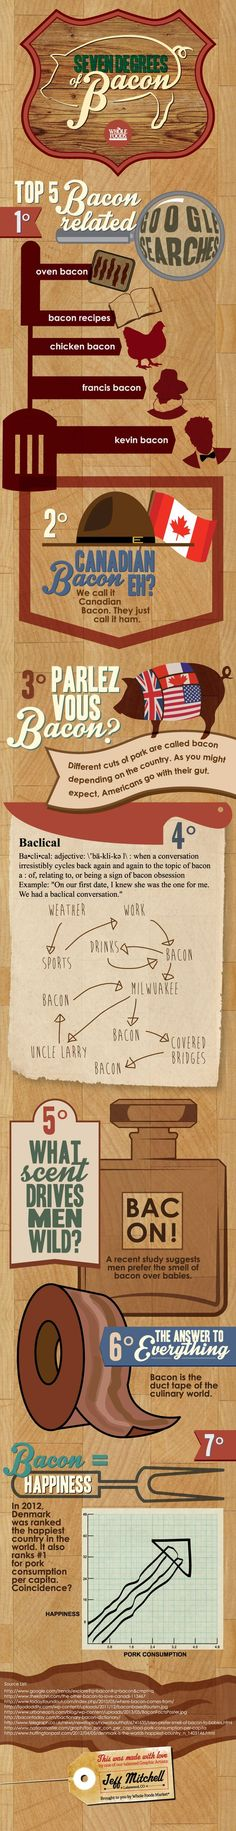 Seven degrees of bacon! #holiday #infographic #bacon: